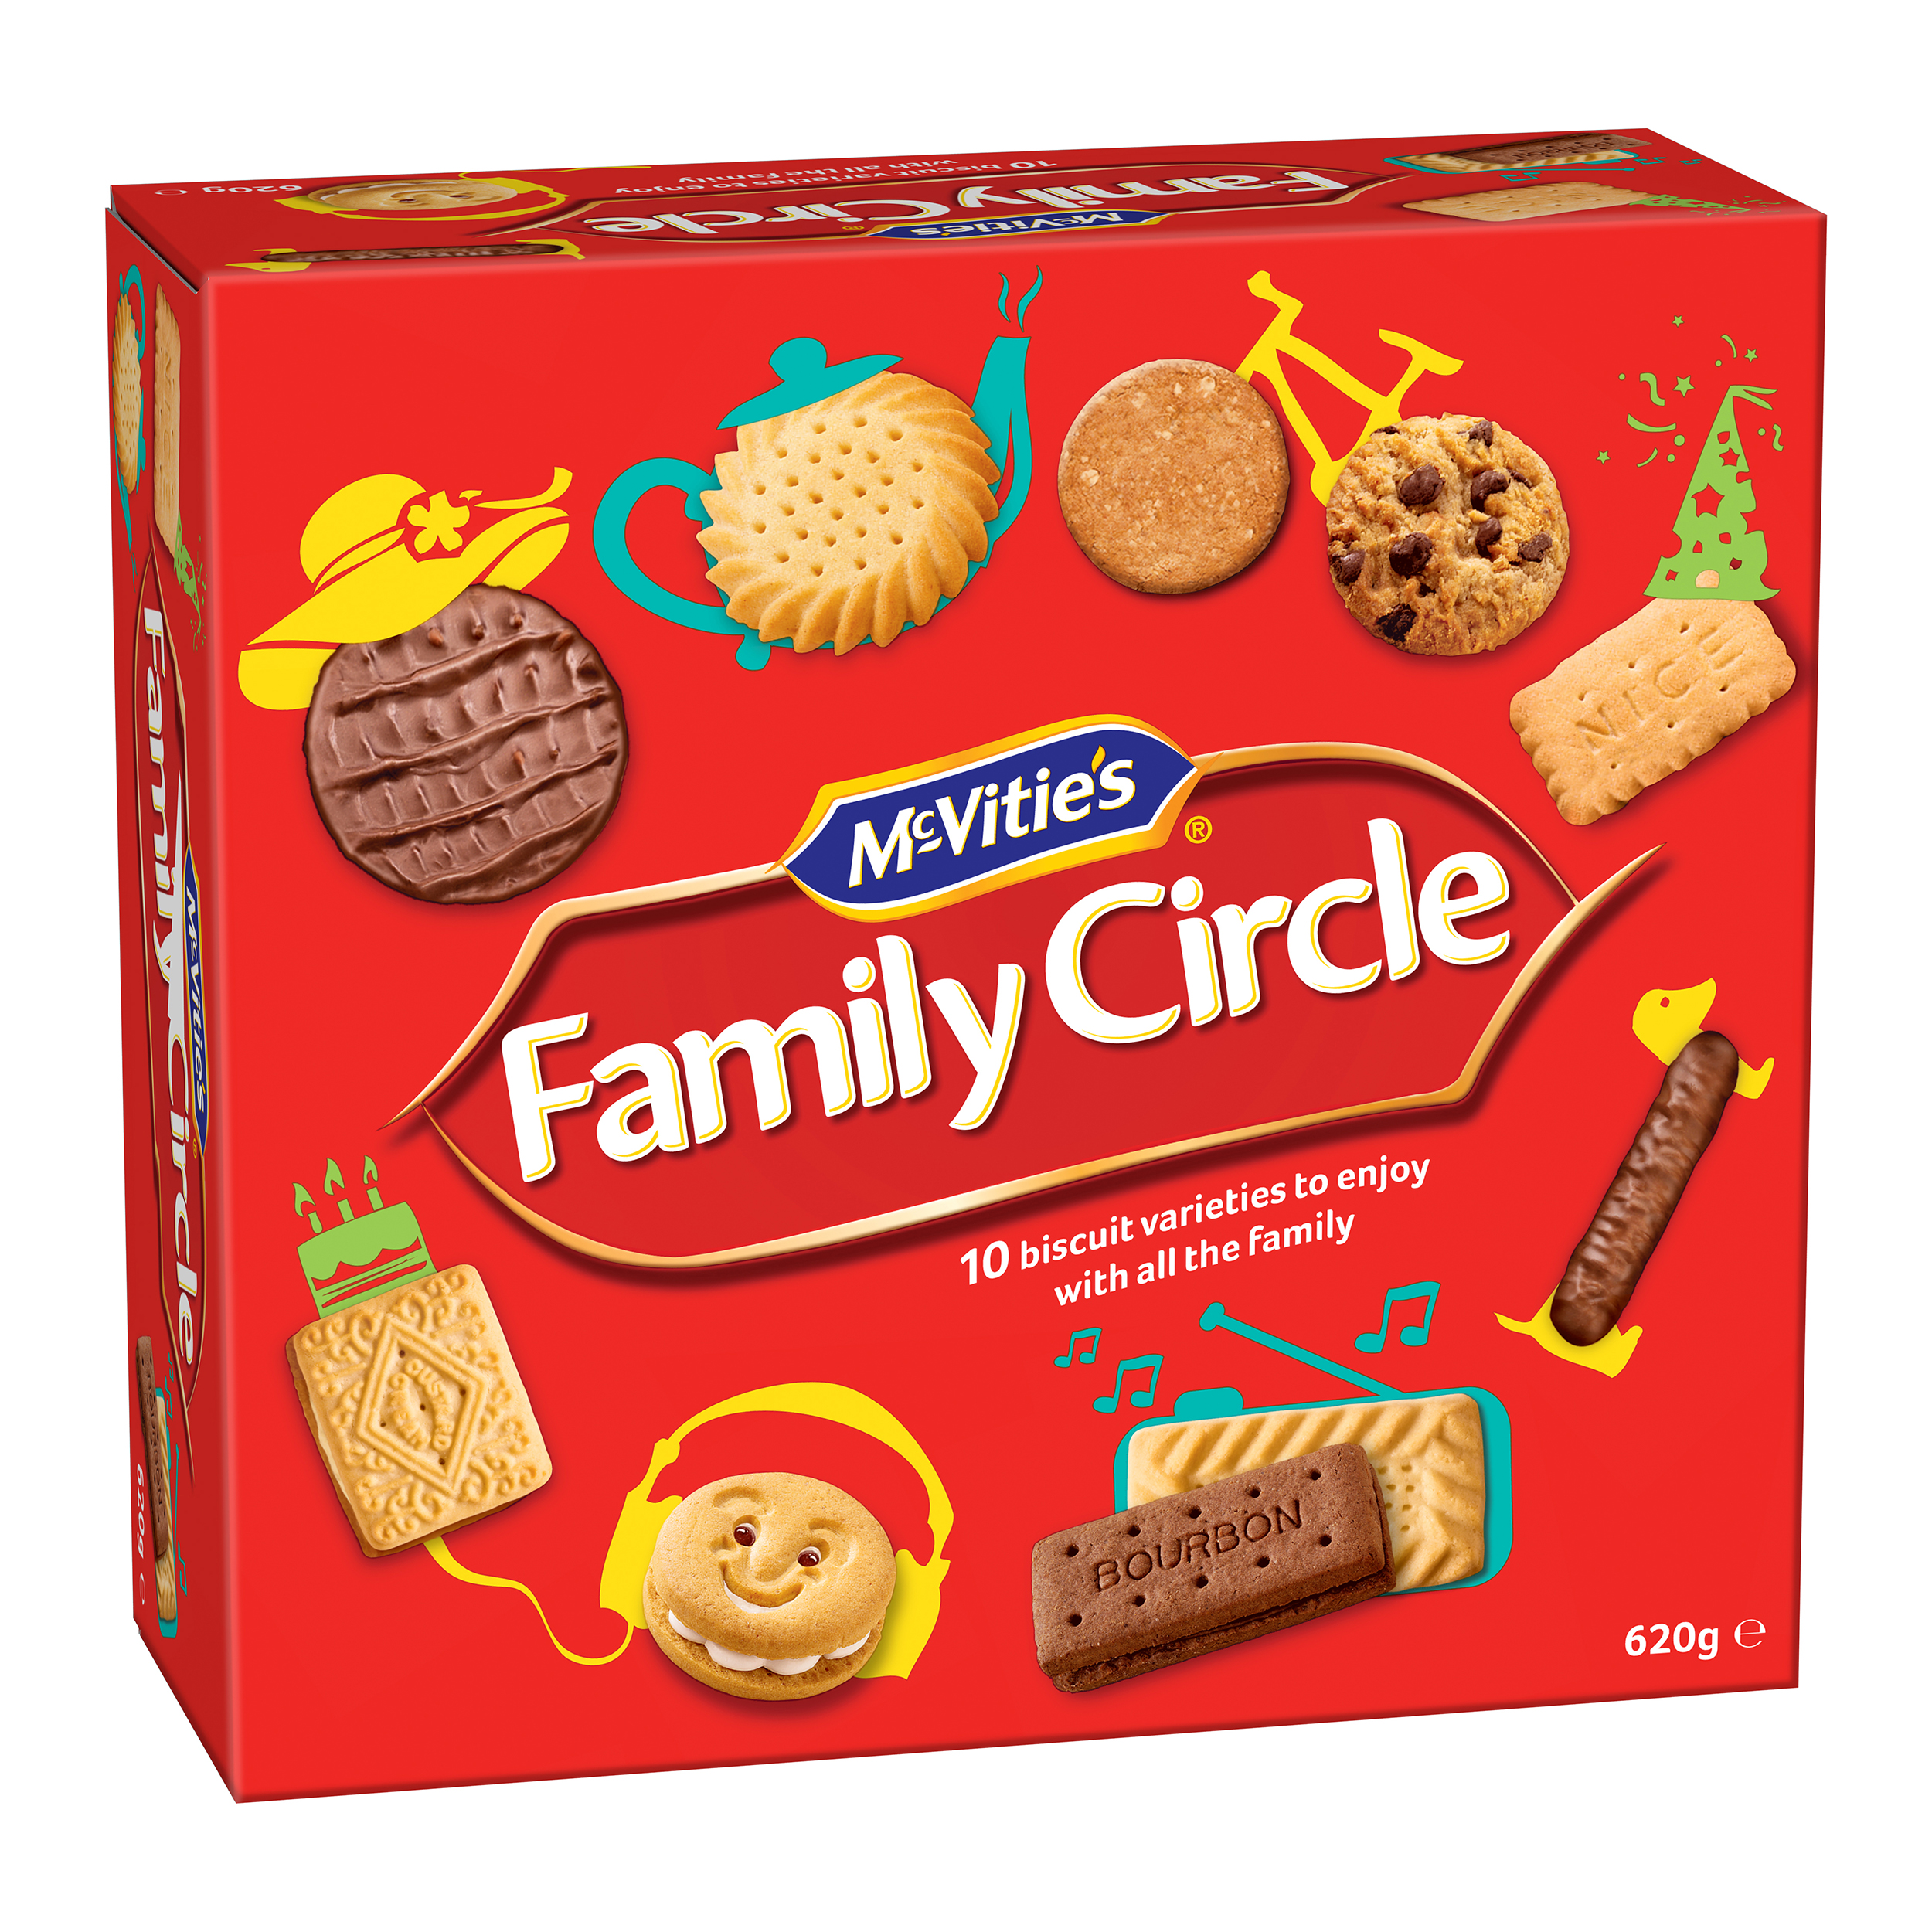 Biscuits McVities Family Circle Biscuits Re-sealable Box Assorted 10 Varieties 620g Ref 0401200